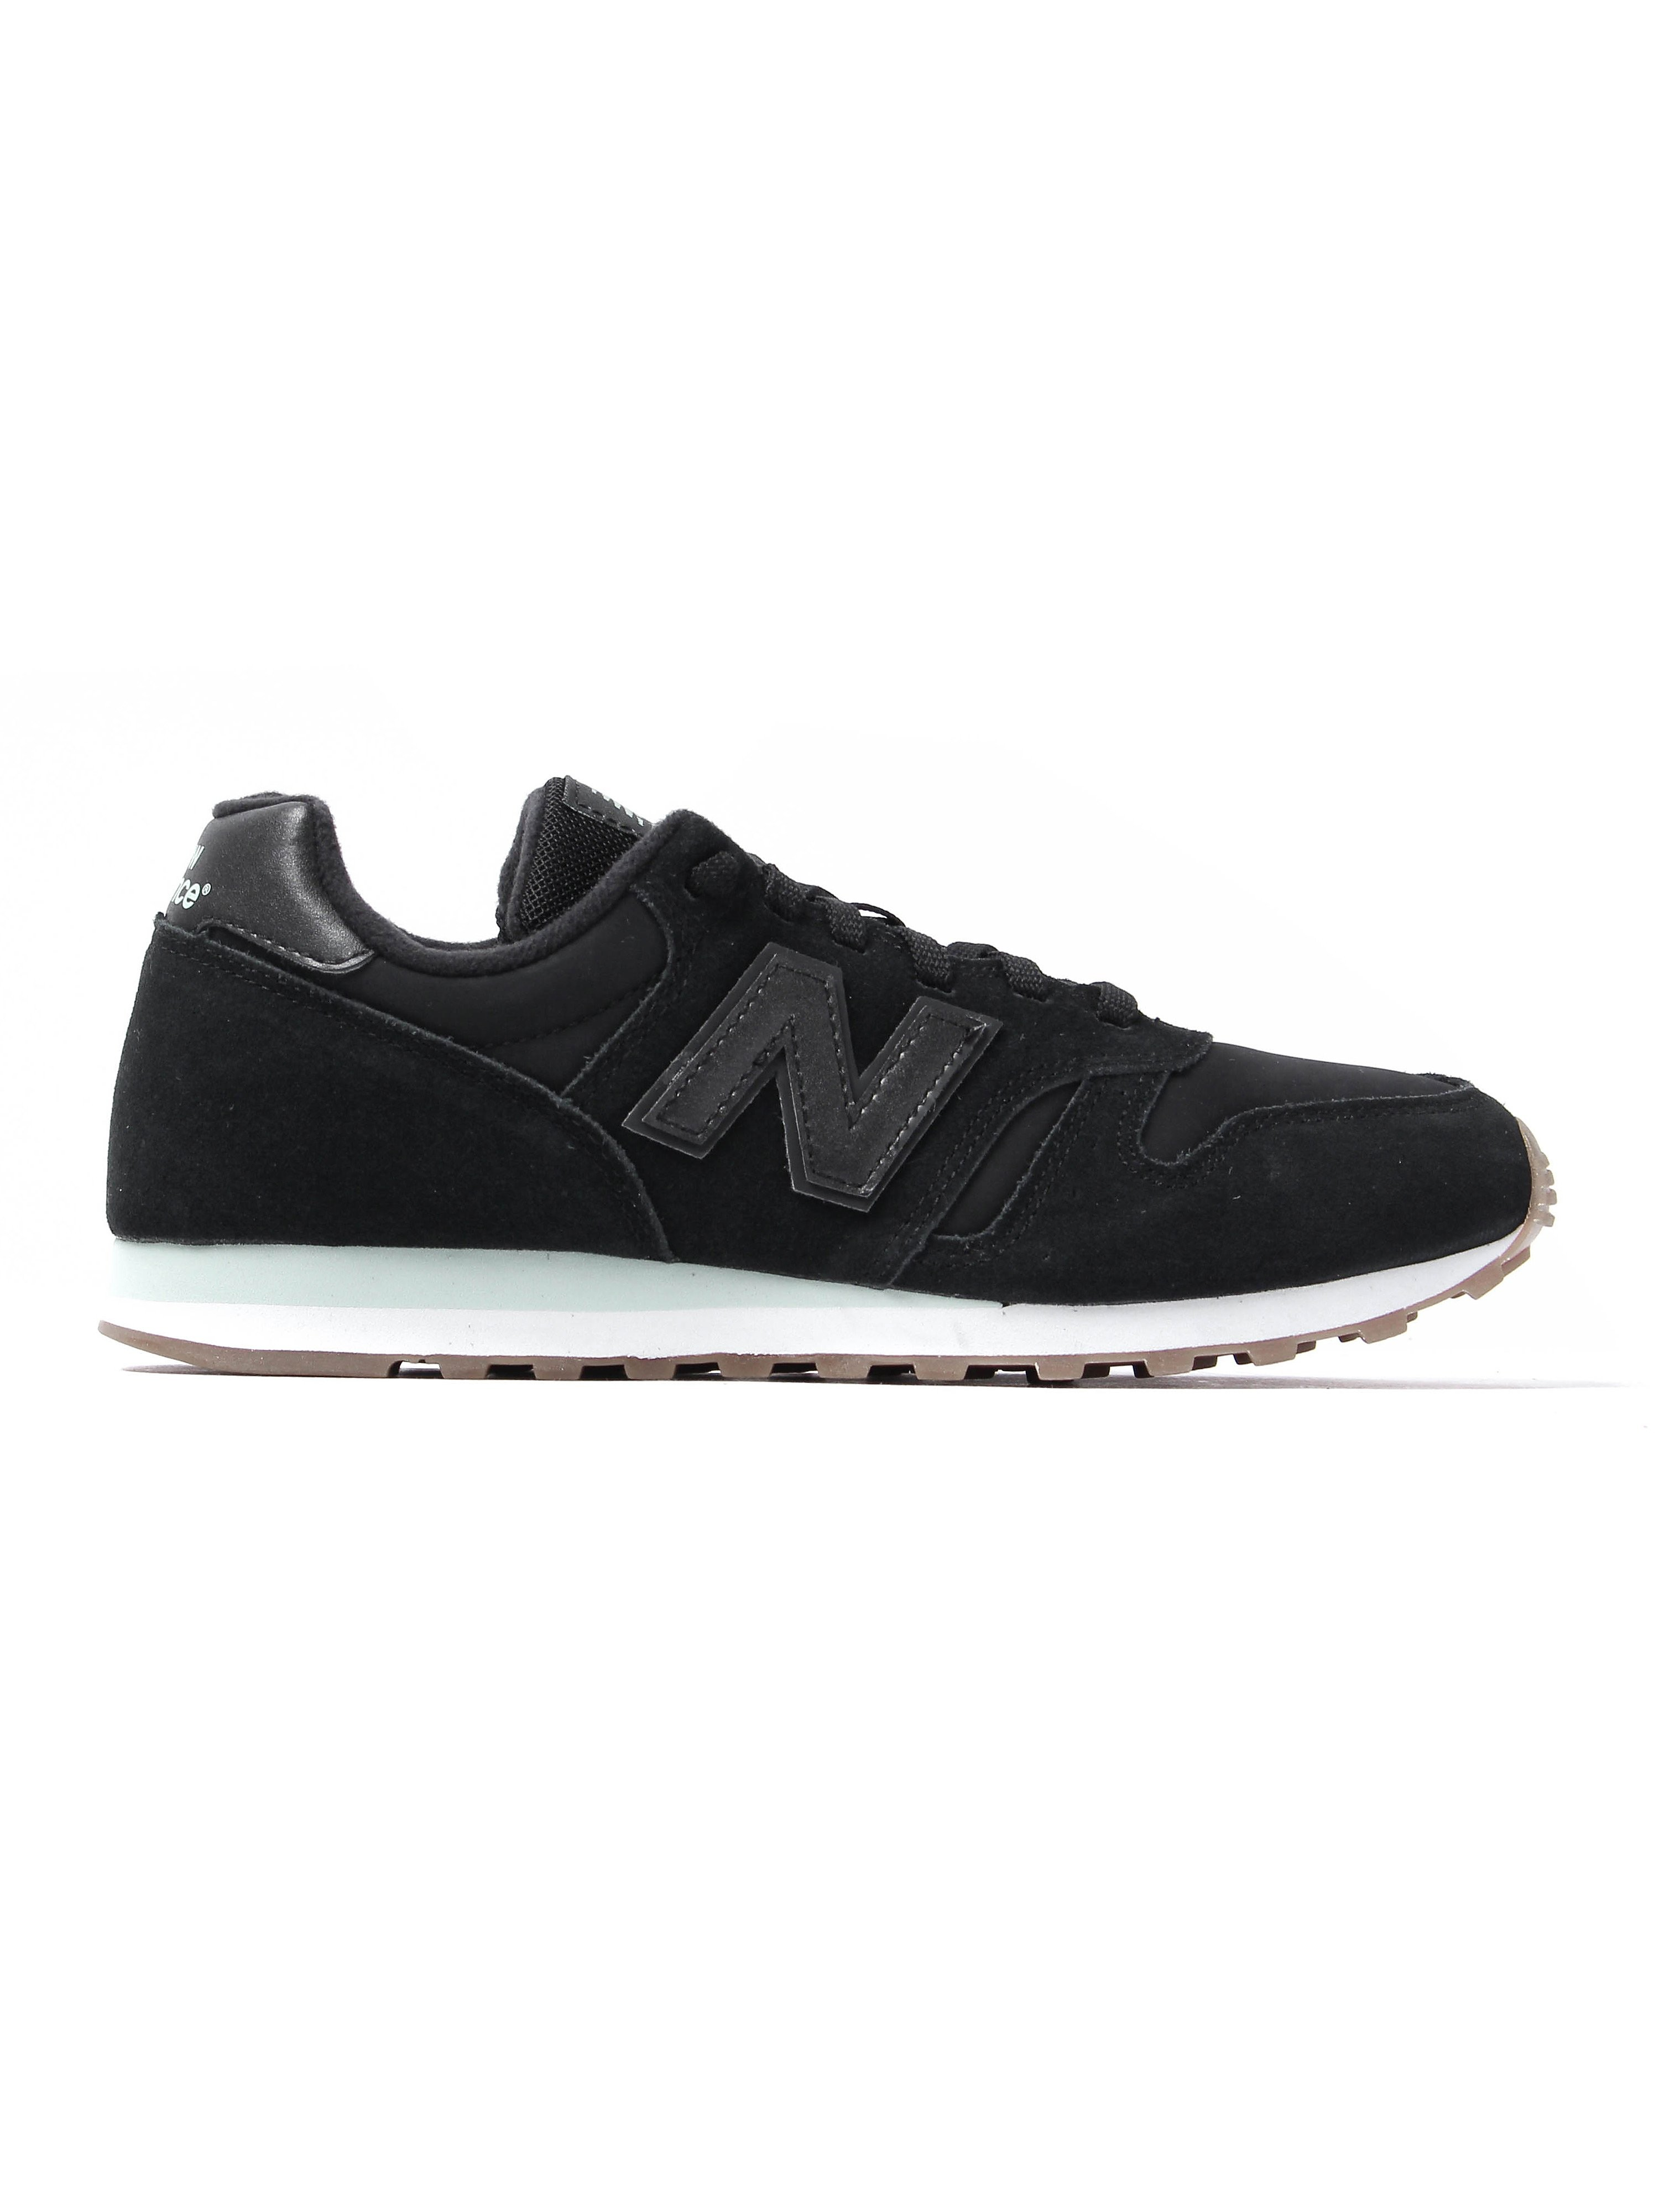 New Balance Women's 373 Suede Trainers - Black